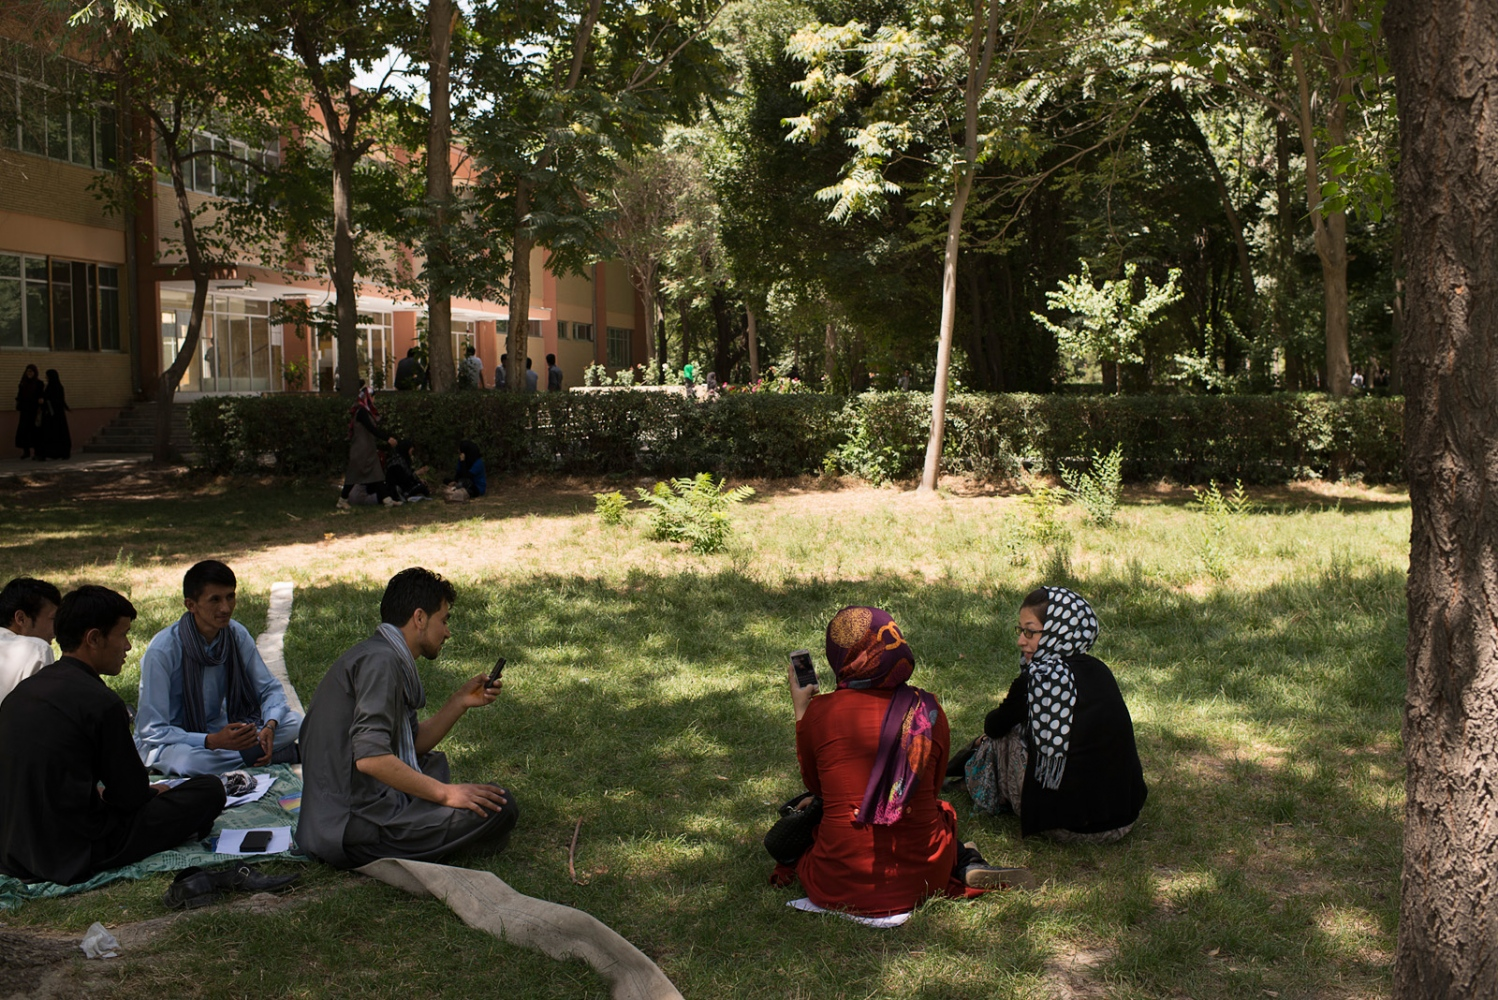 KABUL, AFGHANISTAN | 2014-08-09 | A mix group of students socialize in between exams as they sit together inside Kabul university campus. While social media is allowing the youth to socialize and keep in touch without having to go through the family, it still an odd seen to see a mix group sit together, even on liberal campus of Kabul university.